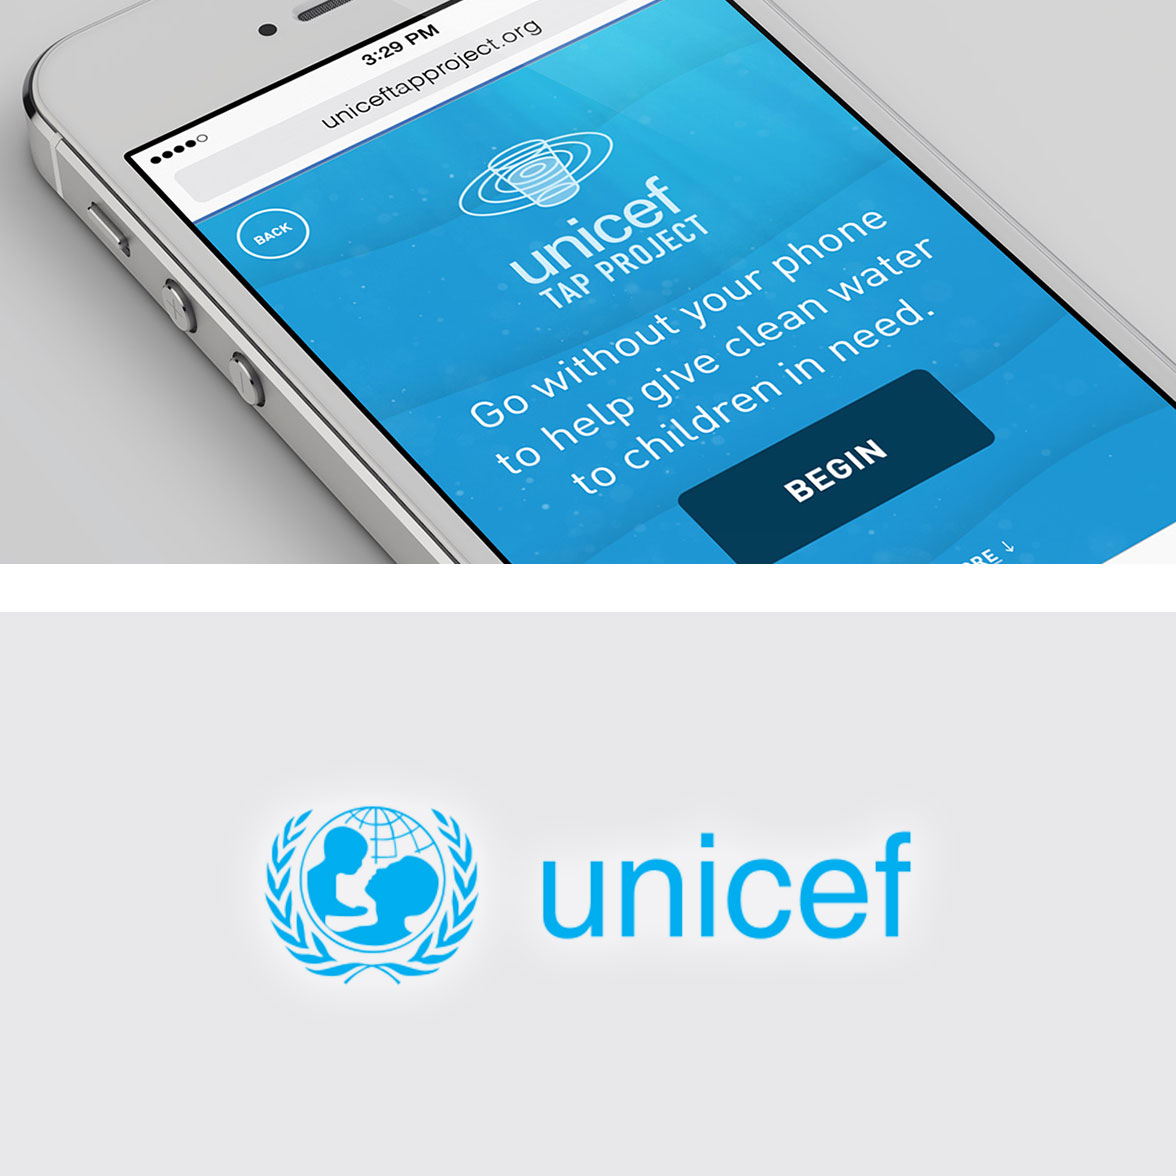 Unicef on mobile and the logo